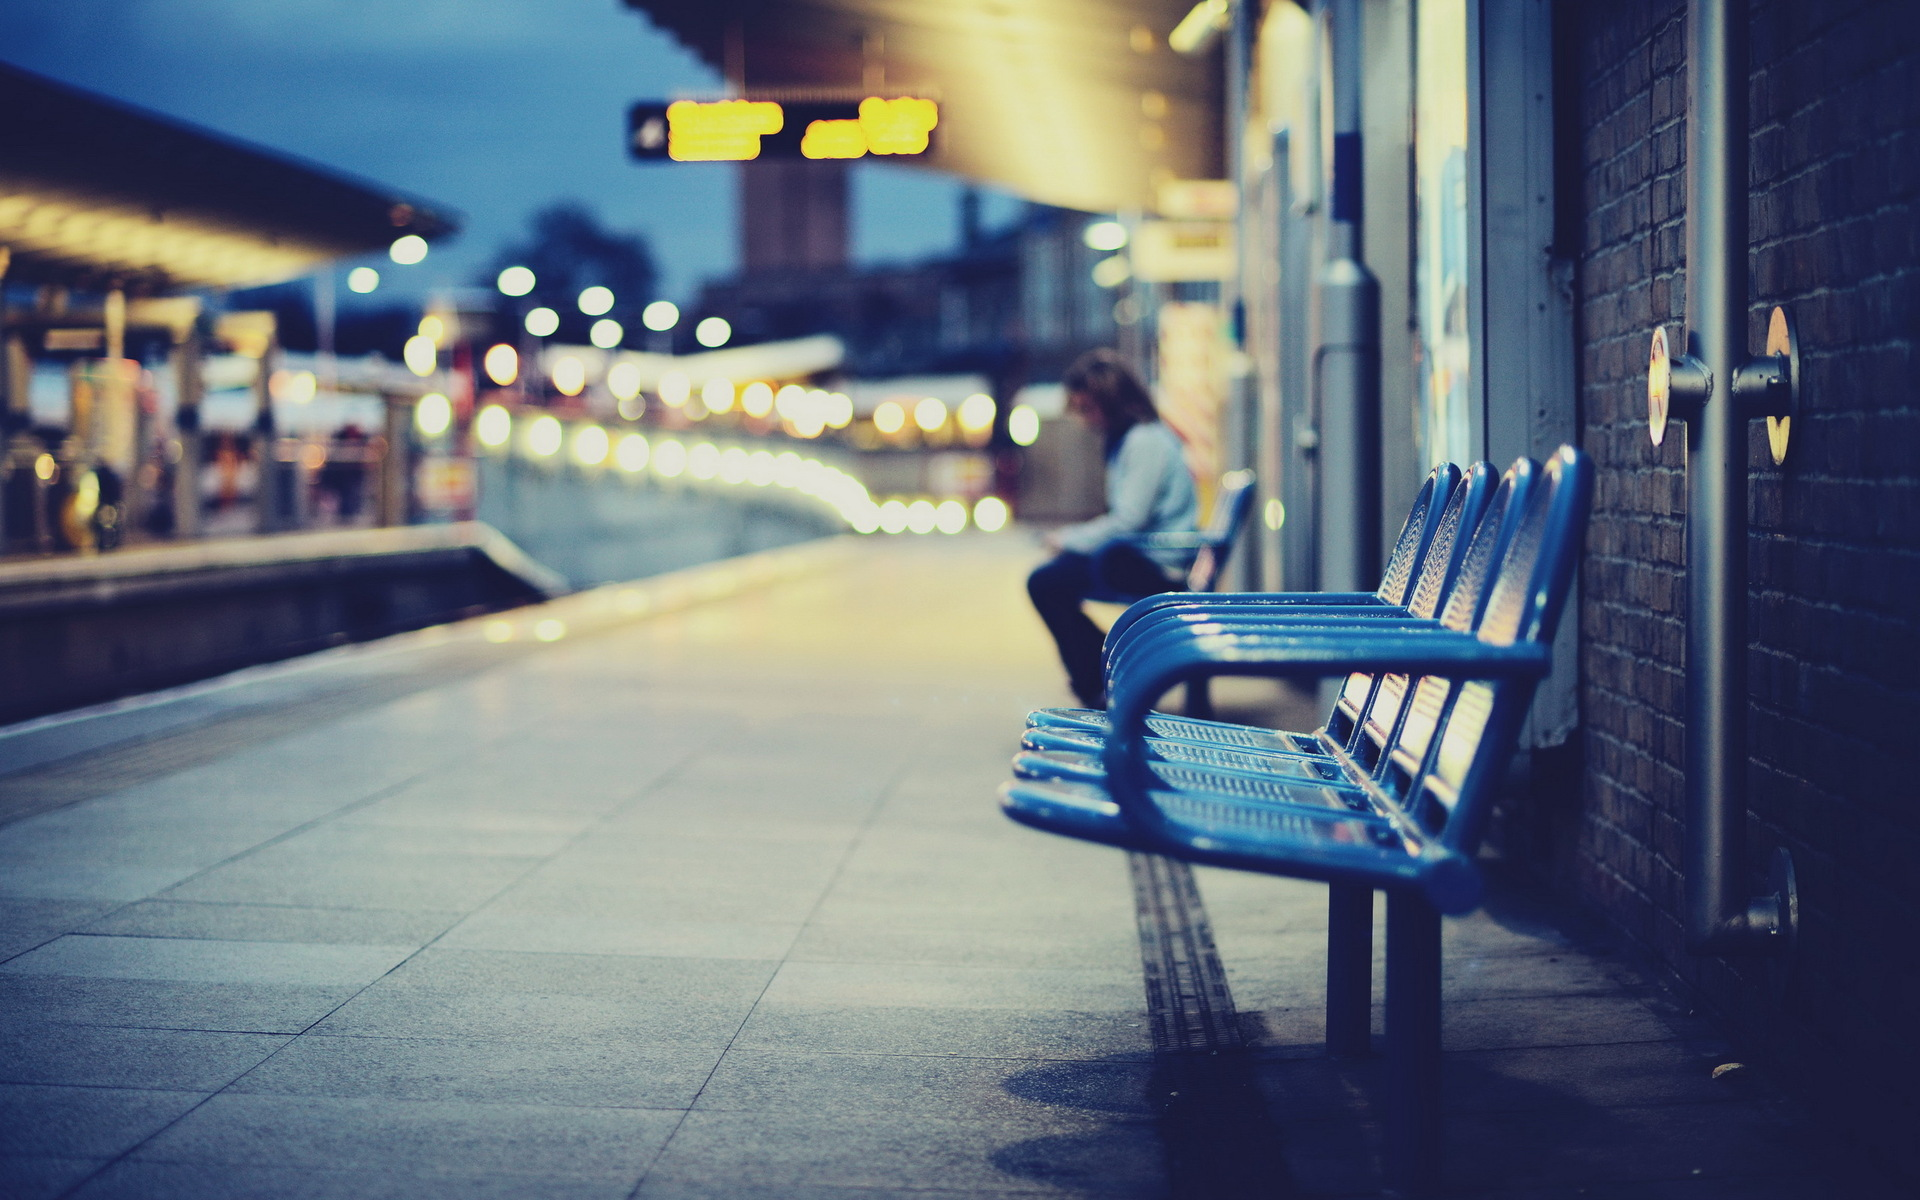 Bench full hd wallpaper and background image 1920x1200 id 304419 - Wait wallpaper hd ...